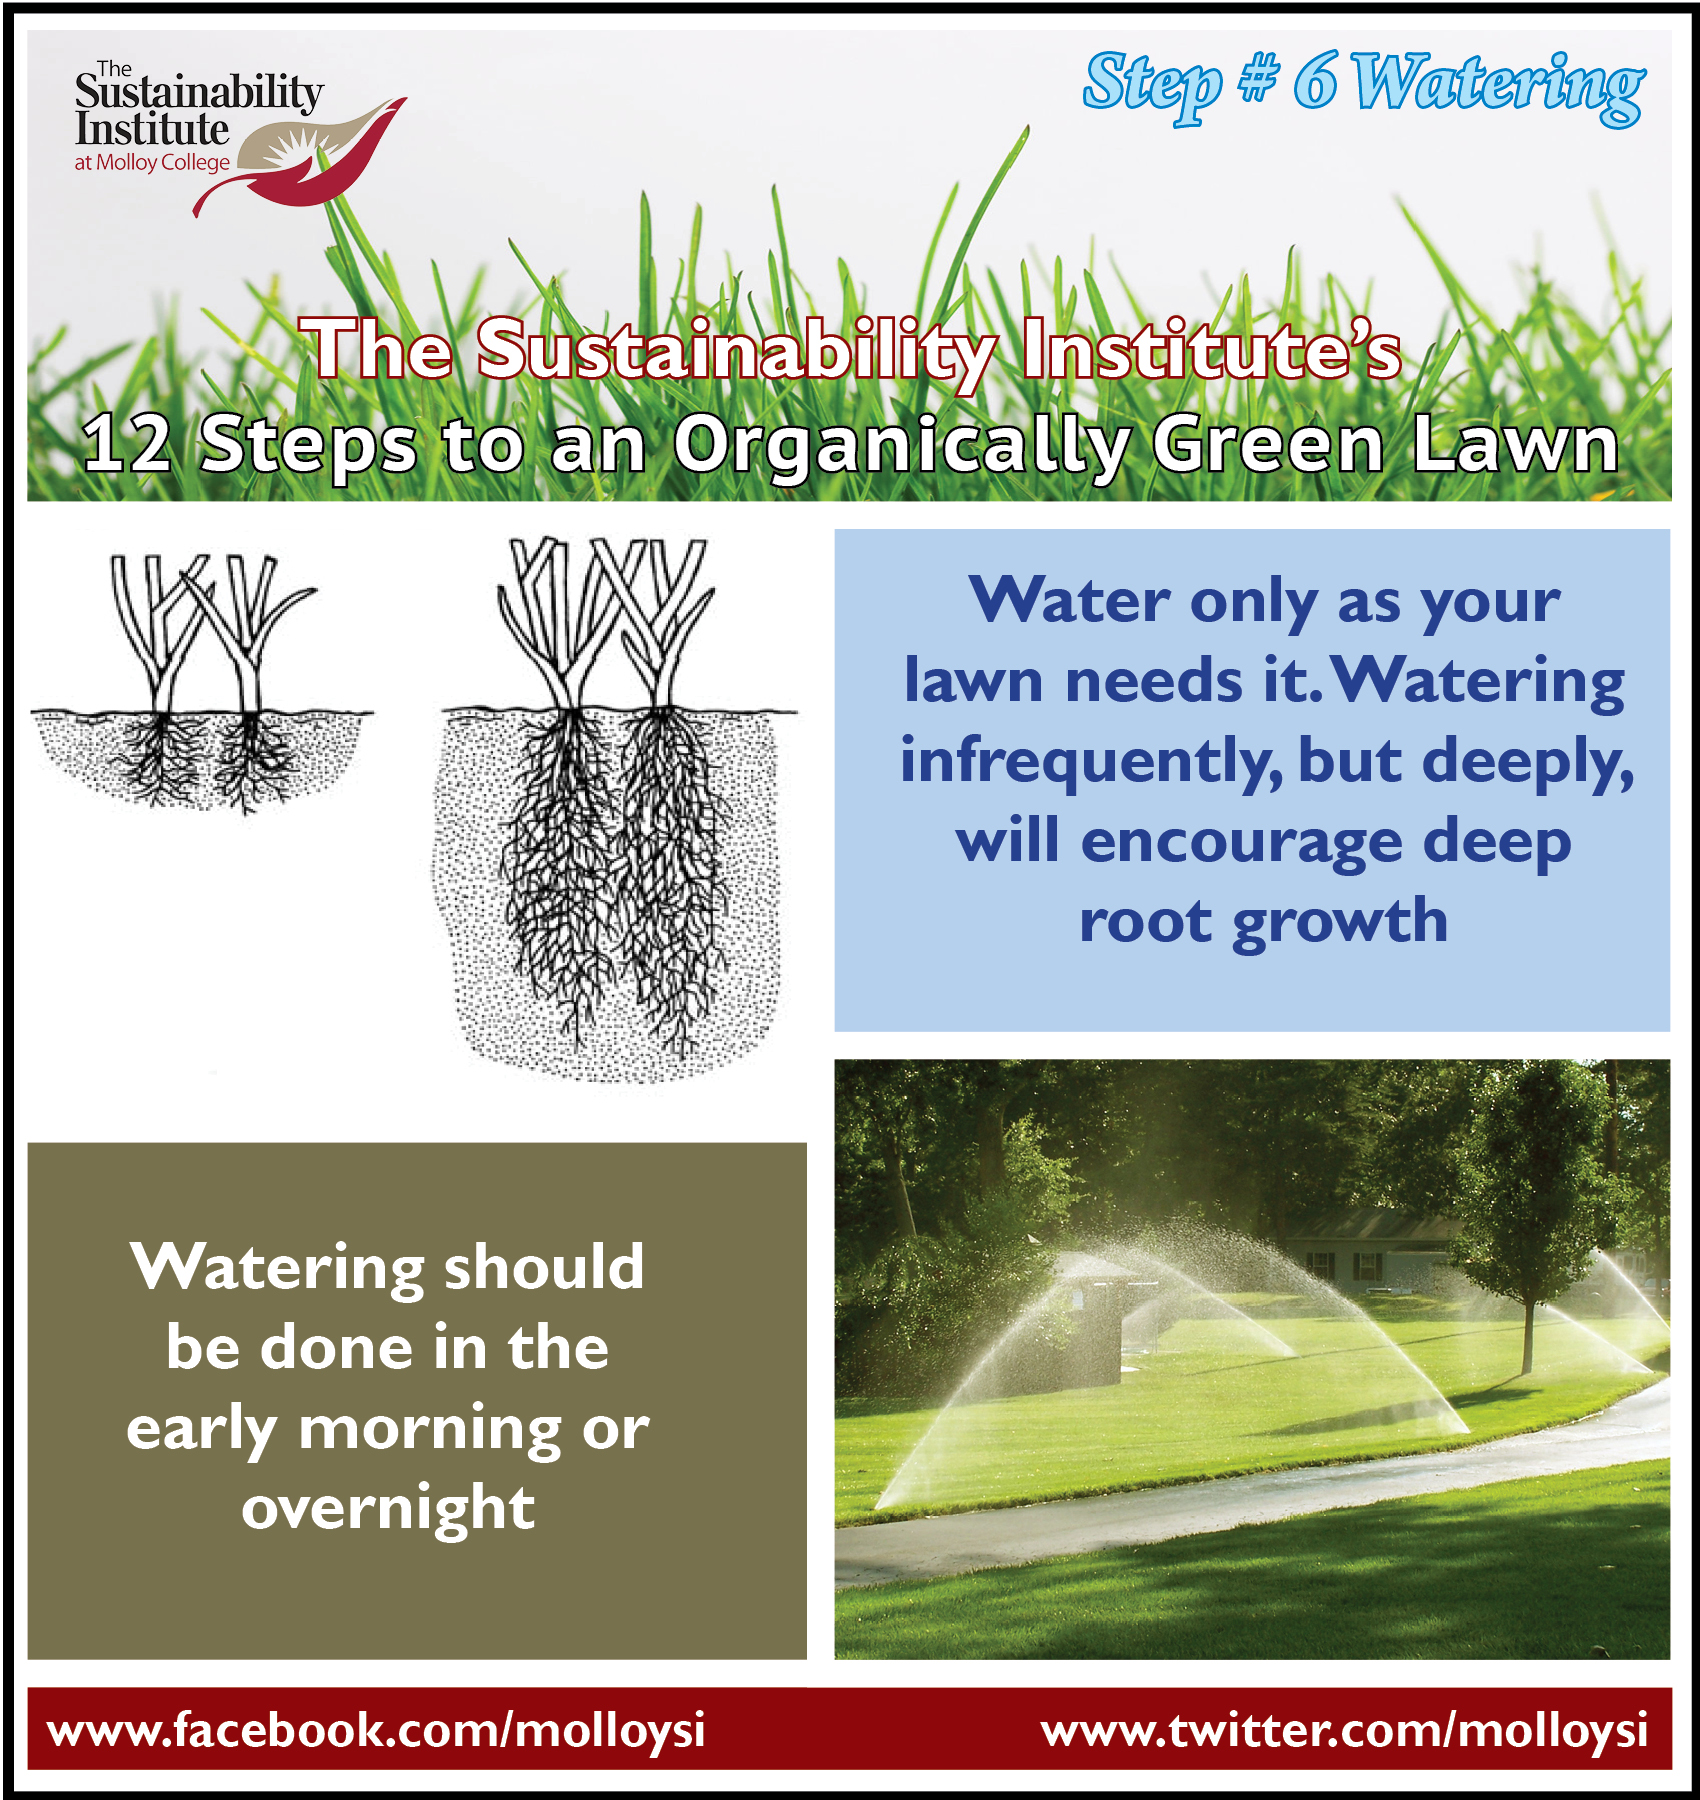 Molloy College: Step 6 - Watering — Is your lawn dying of